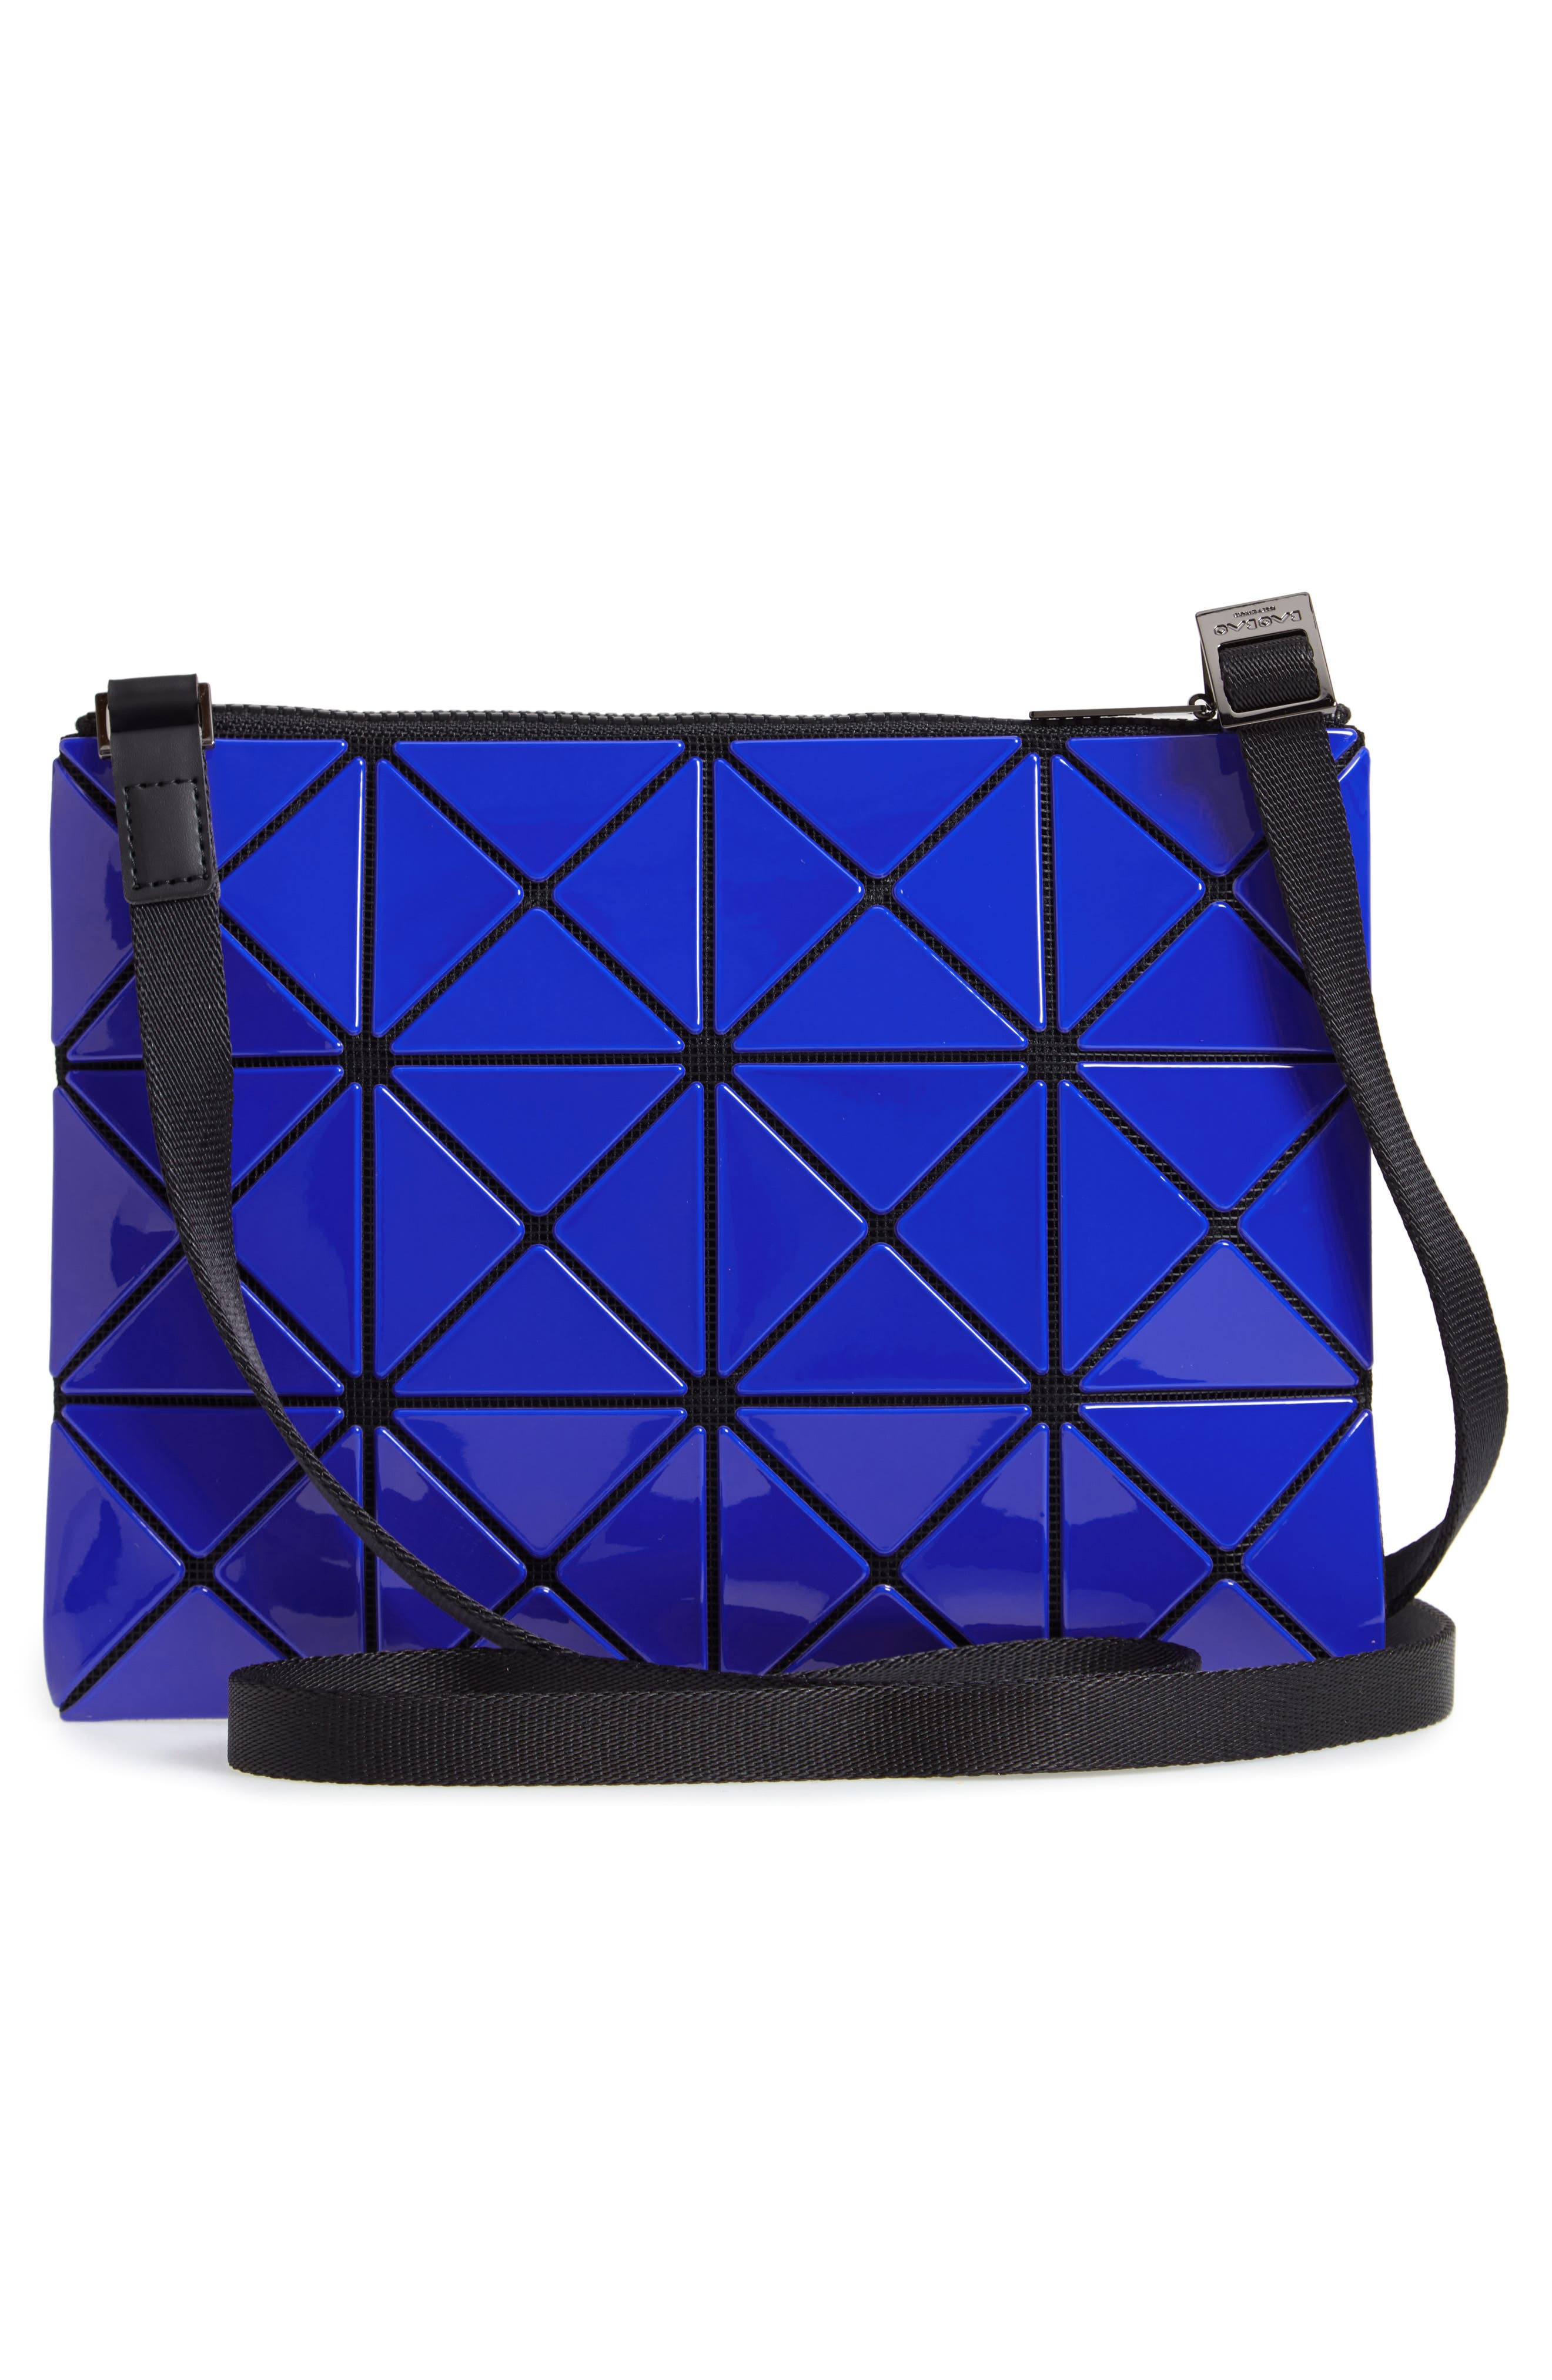 Lucent Two-Tone Crossbody Bag,                             Alternate thumbnail 3, color,                             400